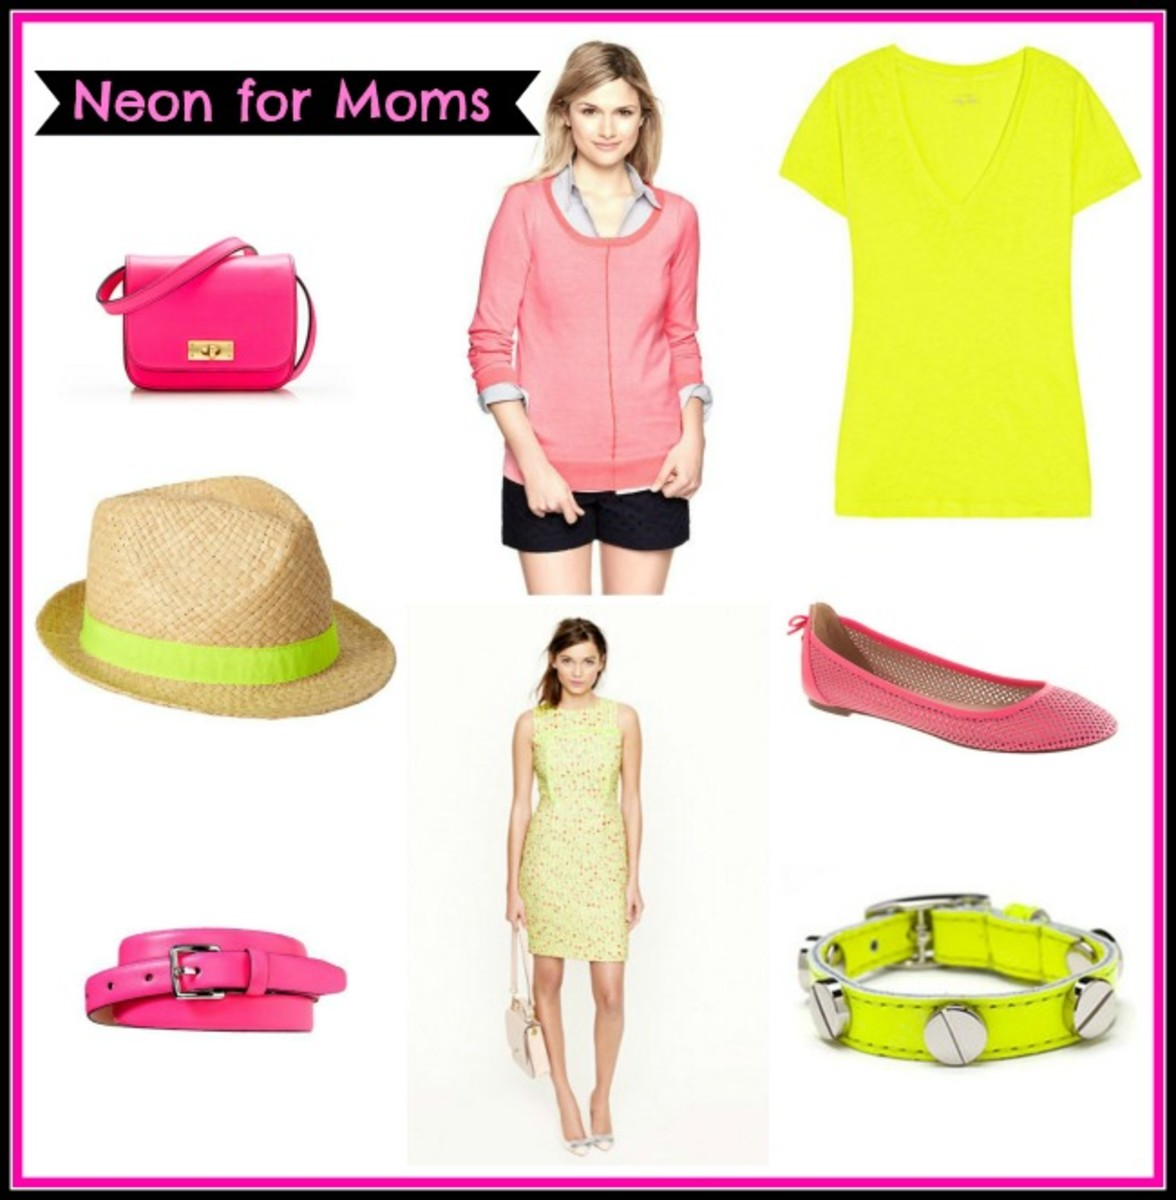 neon, neon for moms, spring 2013 fashion trends